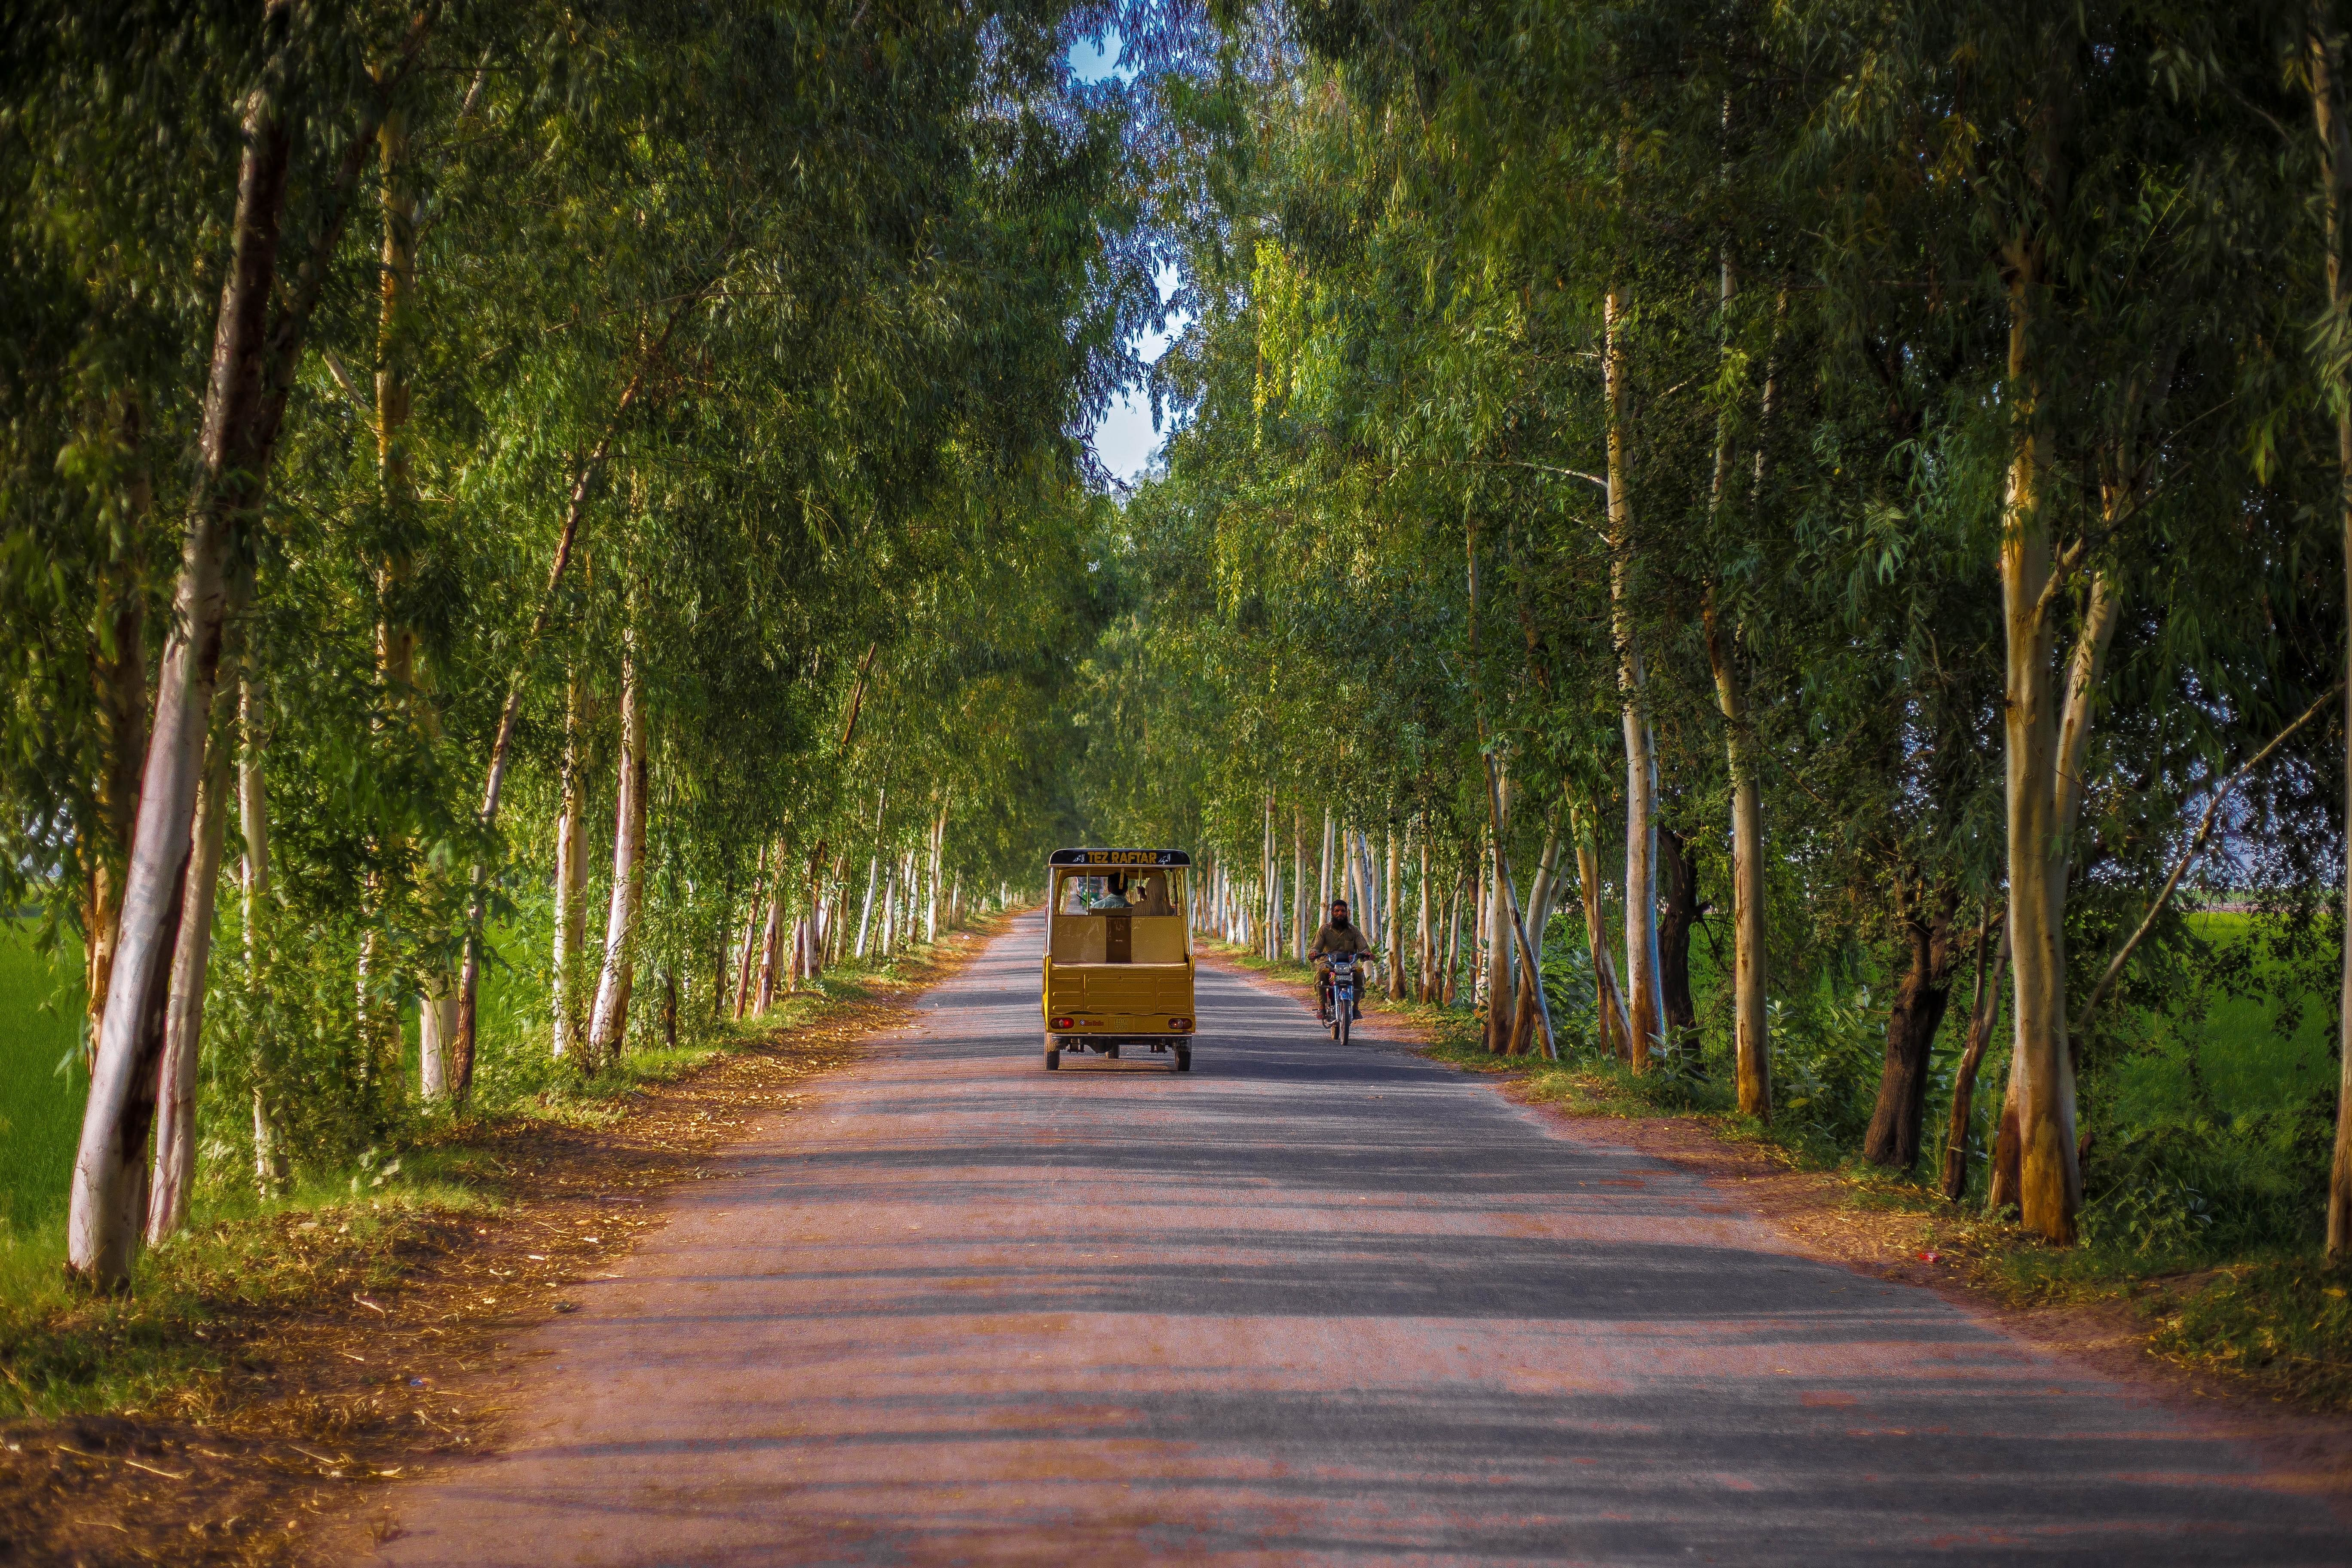 Village road lined with trees, Punjab Pakistan.